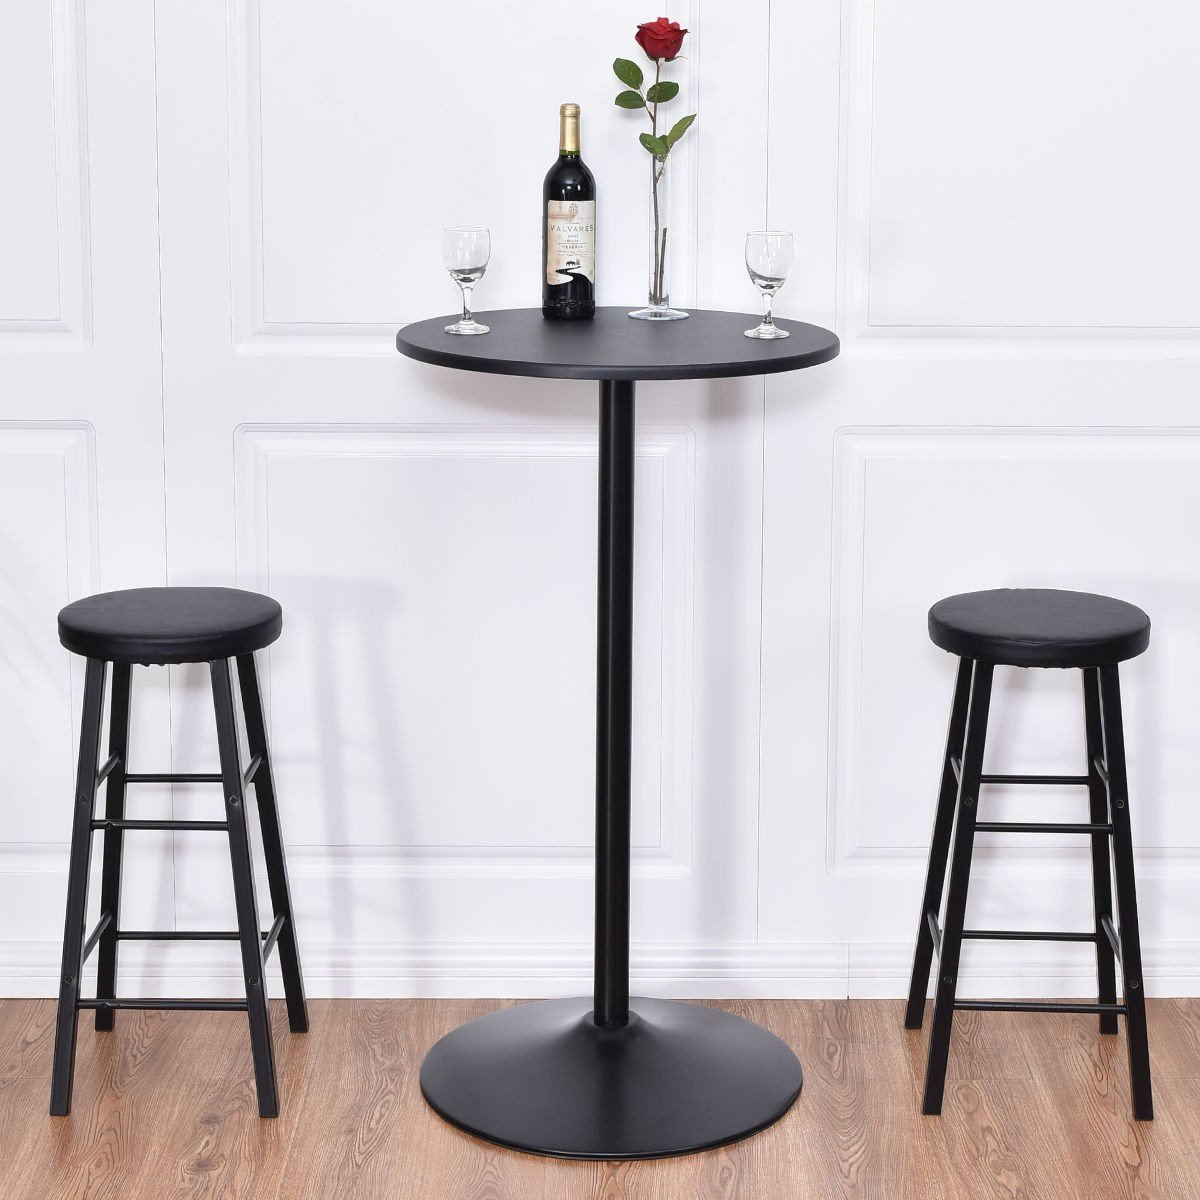 By Choice Products 3 pcs Round Bar Table Set w/ 2 Stools Bistro Pub